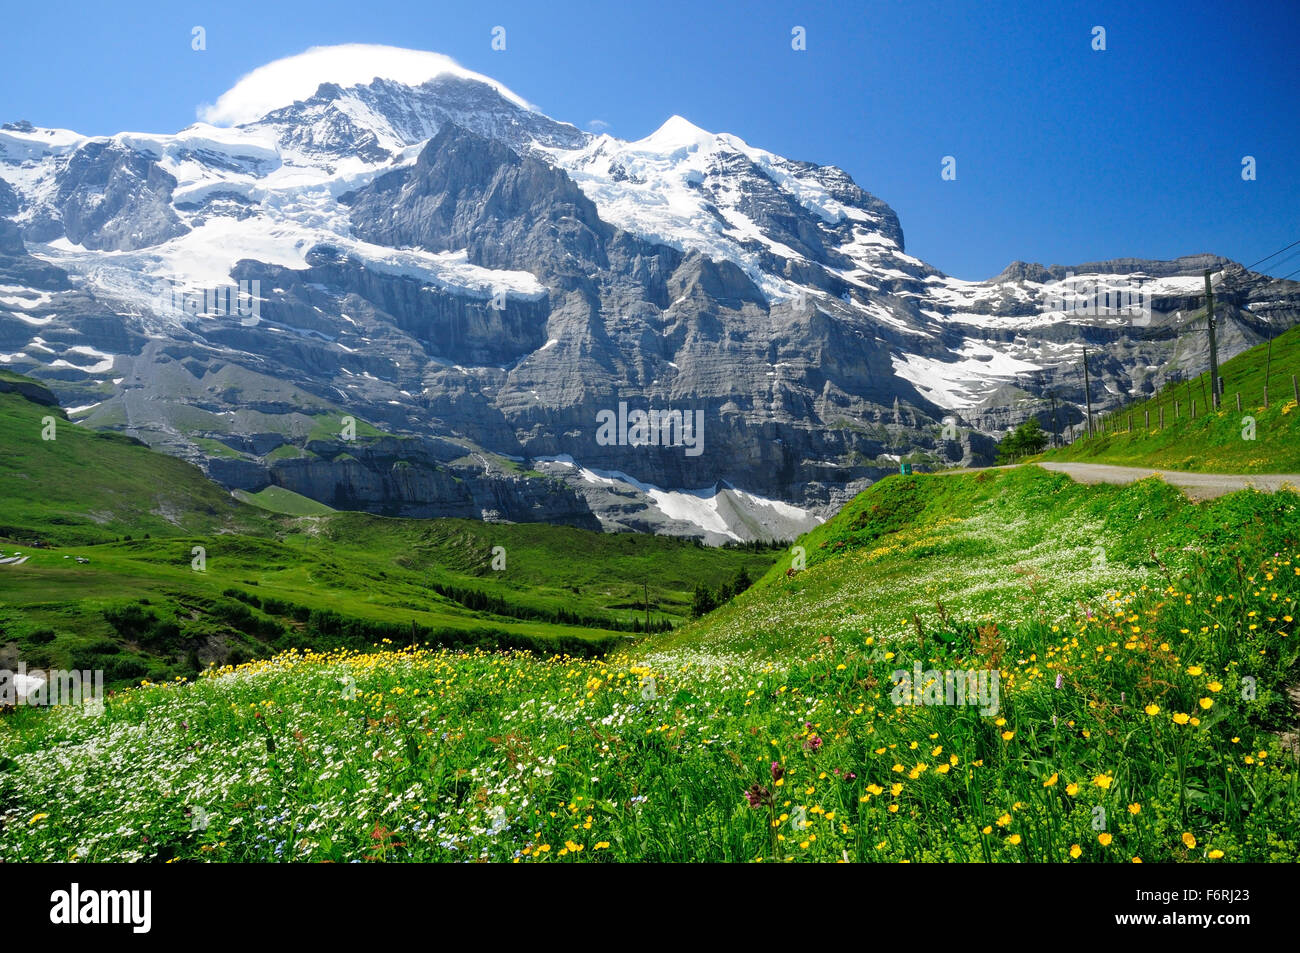 A dome shaped cloud covers the summit of the Jungfrau, seen from the wildflower meadows near Kleine Scheidegg. - Stock Image